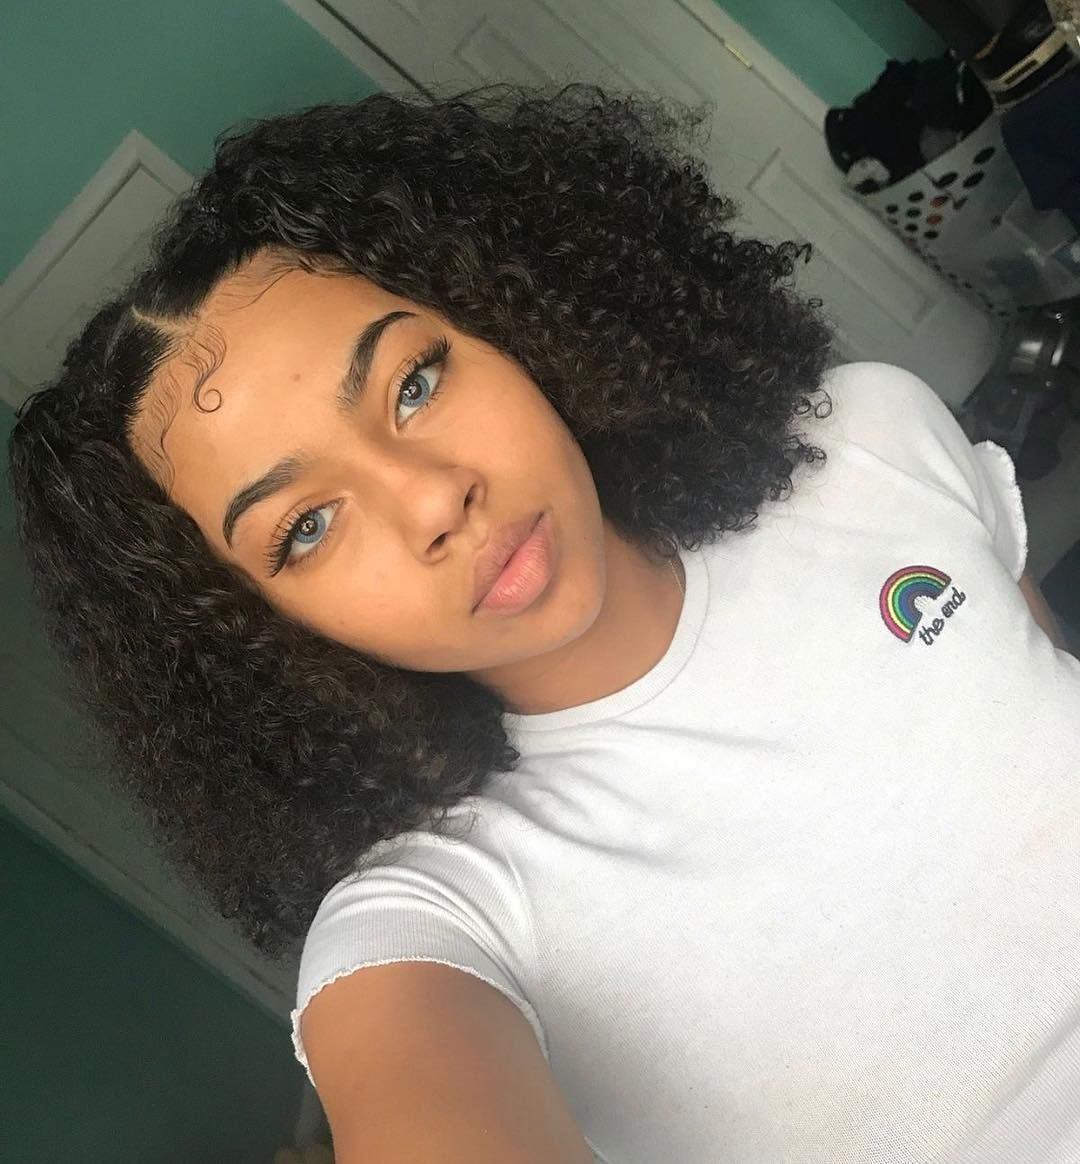 Pinterest Sxlfcarebabes Curly Hair Styles Naturally Curly Hair Styles Natural Hair Styles